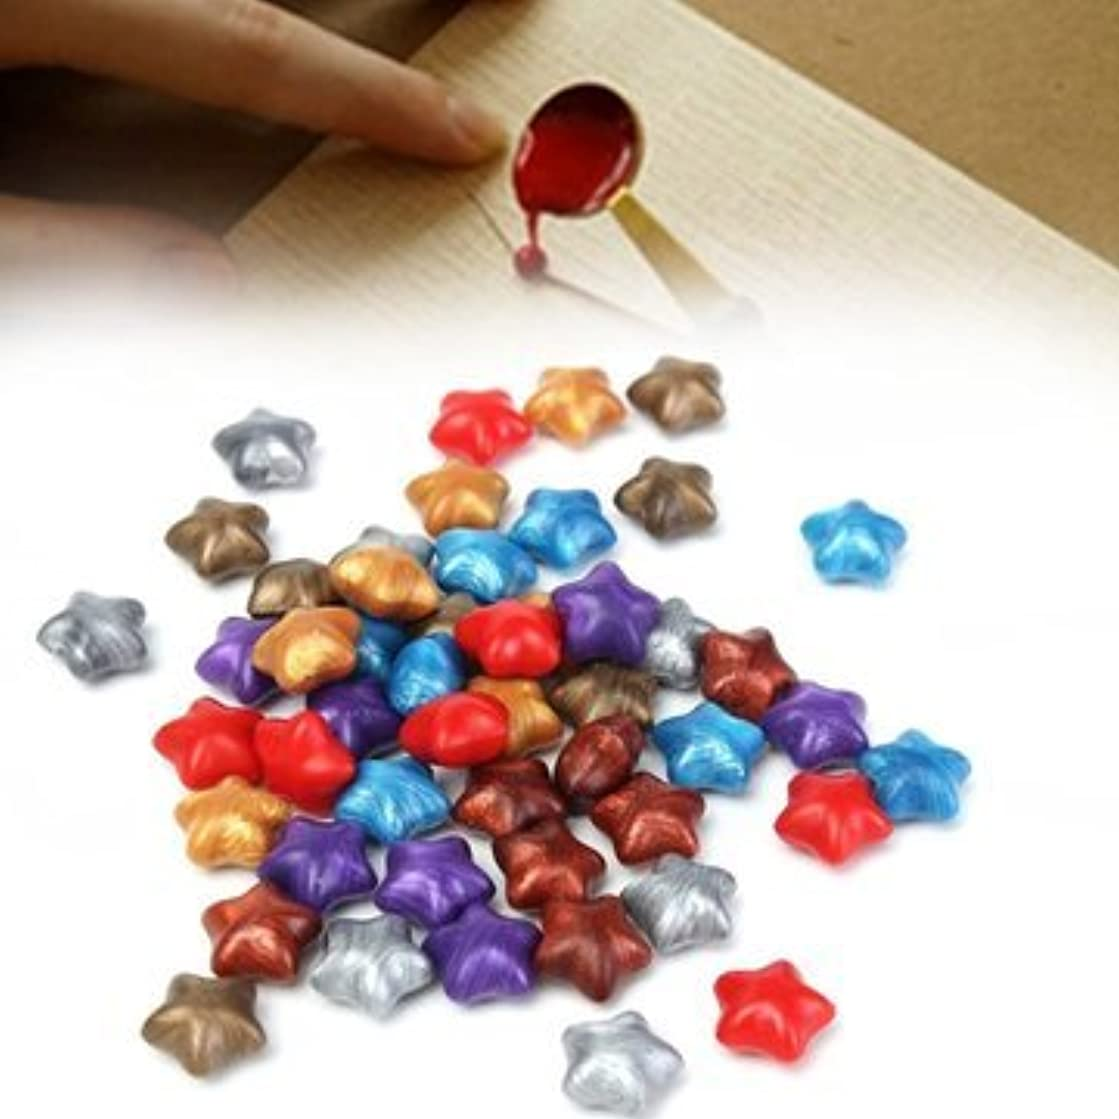 50Pcs Mixed Color Star Wax Seal Ring Pentagram Stamp Accessories - DIY Jewelry Findings & Components